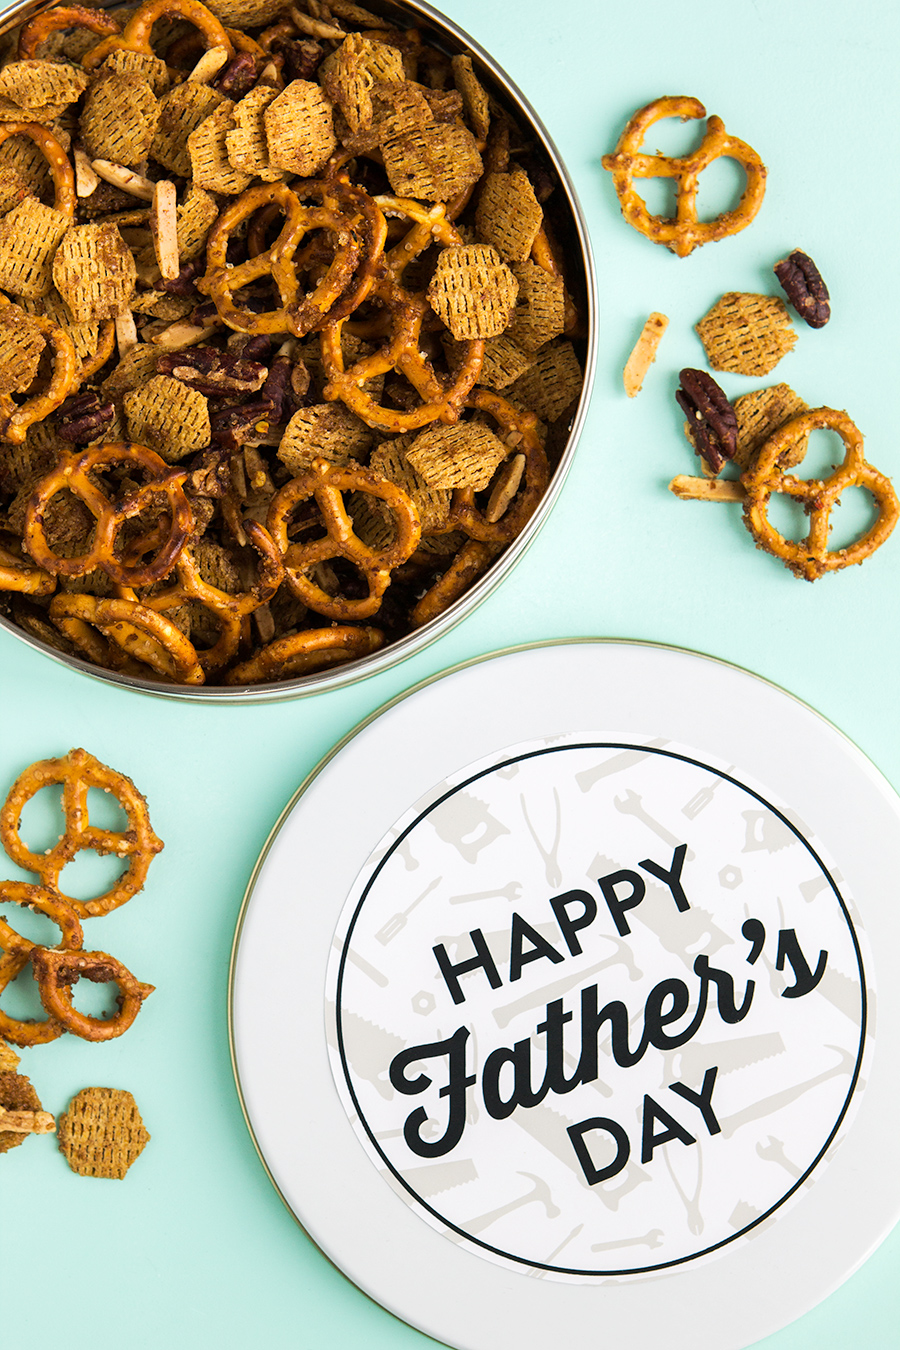 Sweet and savory snack mix with printable tin labels for Father's Day